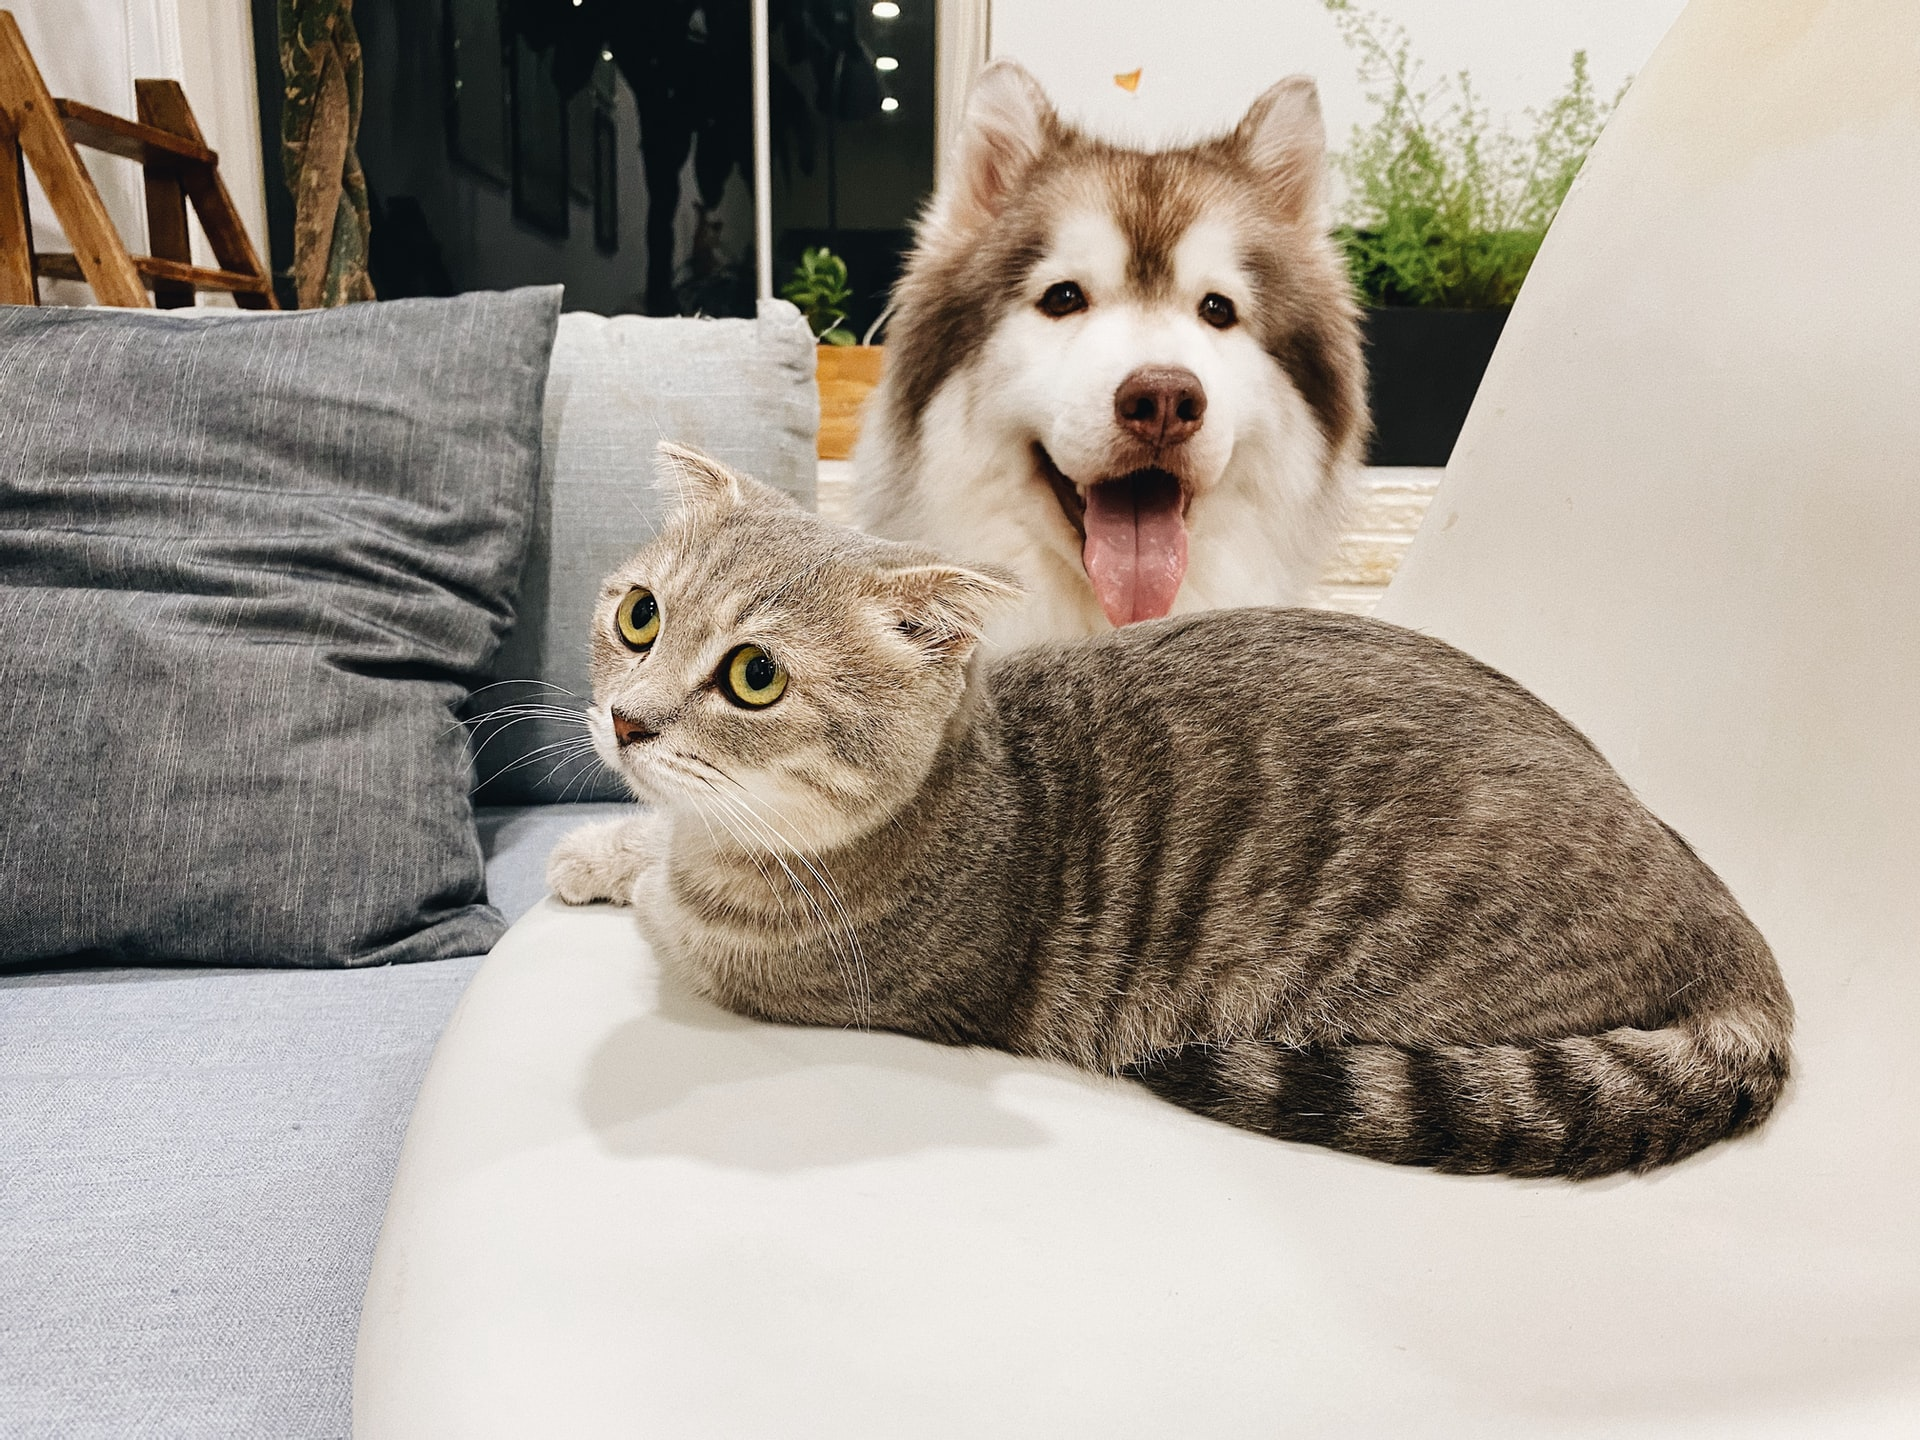 A cat sitting on couch